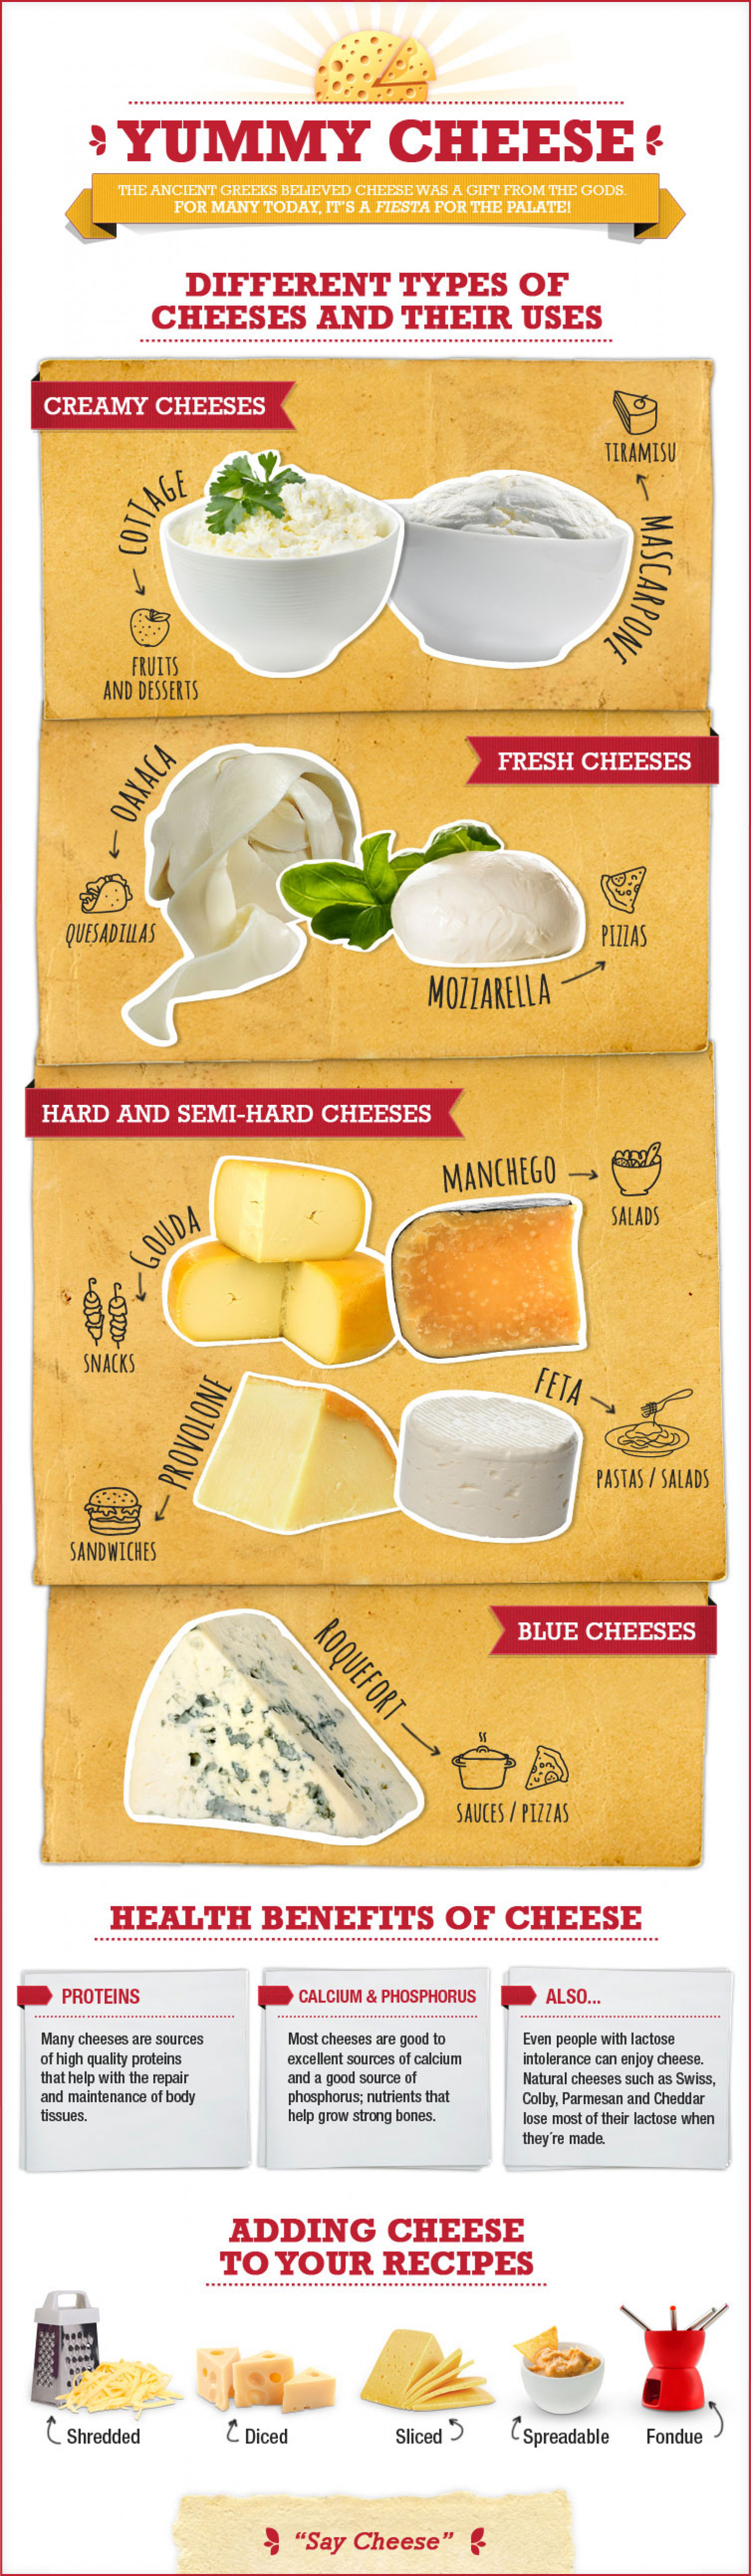 A Cheese Course: The Basic Types and Uses of Cheese Infographic